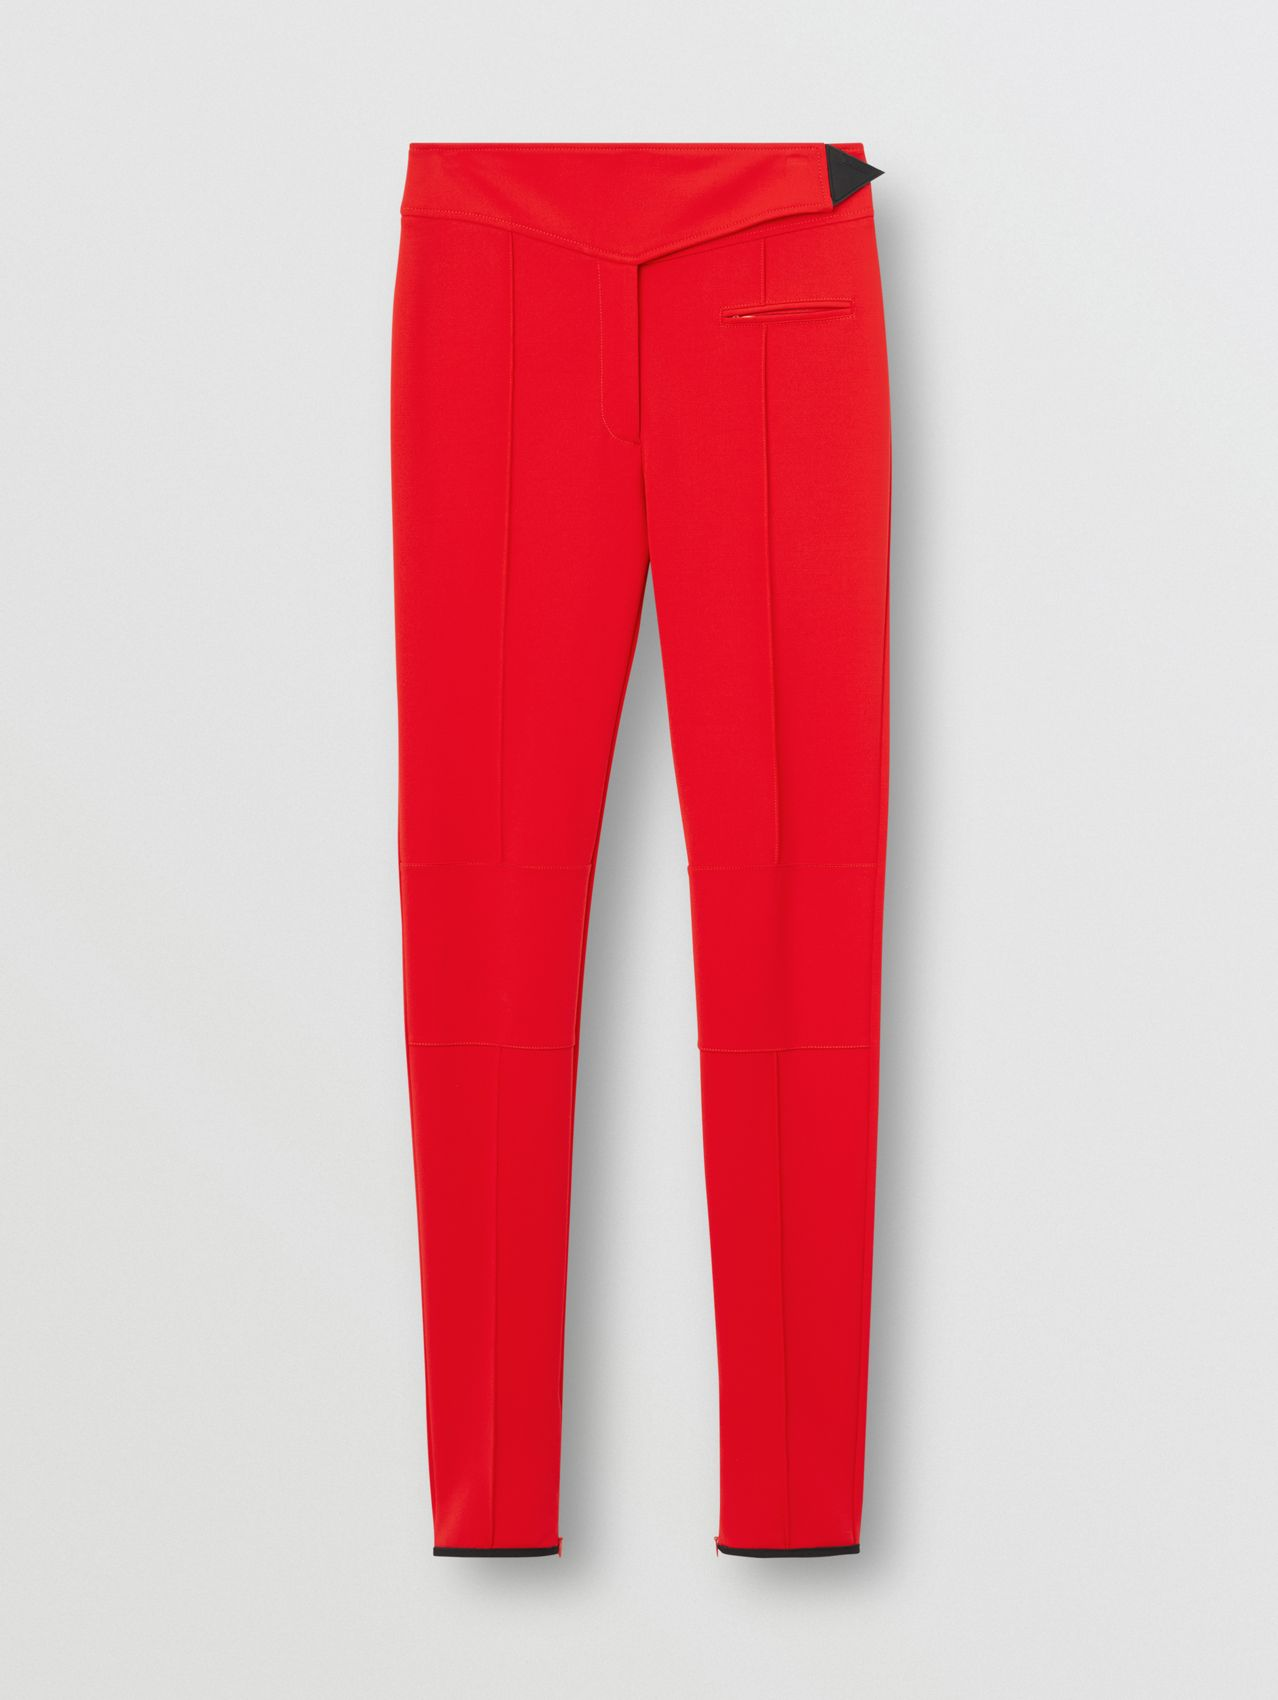 Stretch Crepe Jersey Jodhpurs in Bright Red